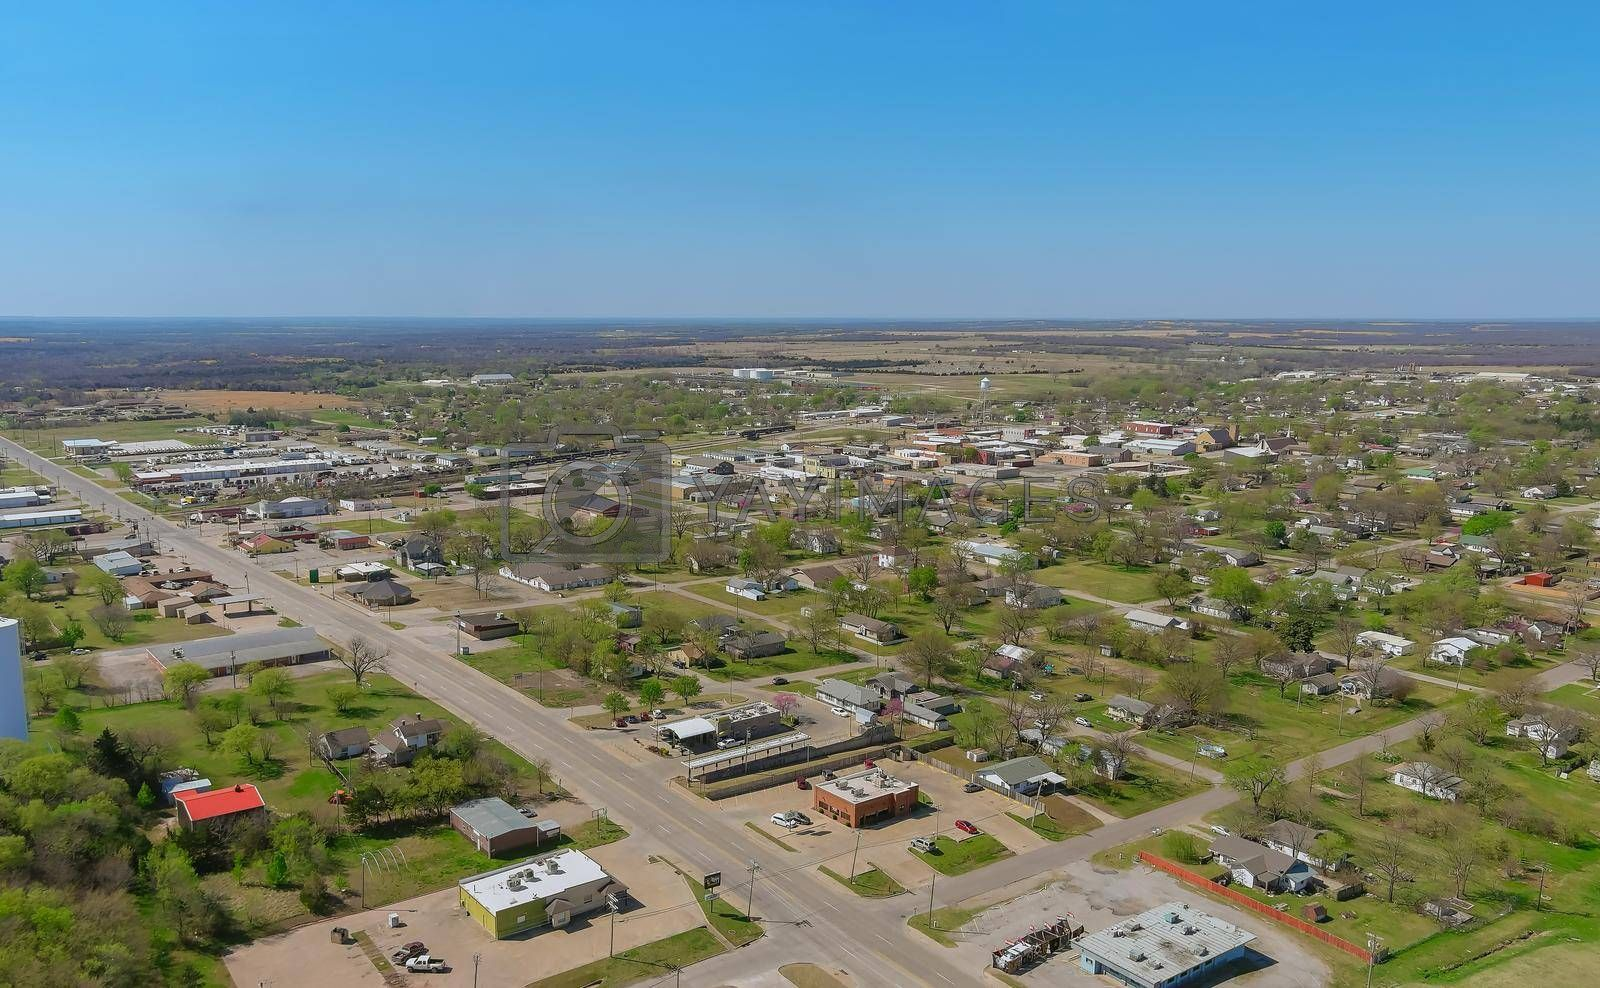 Aerial view panorama of a Stroud small town city of residential district at suburban development with an Oklahoma US